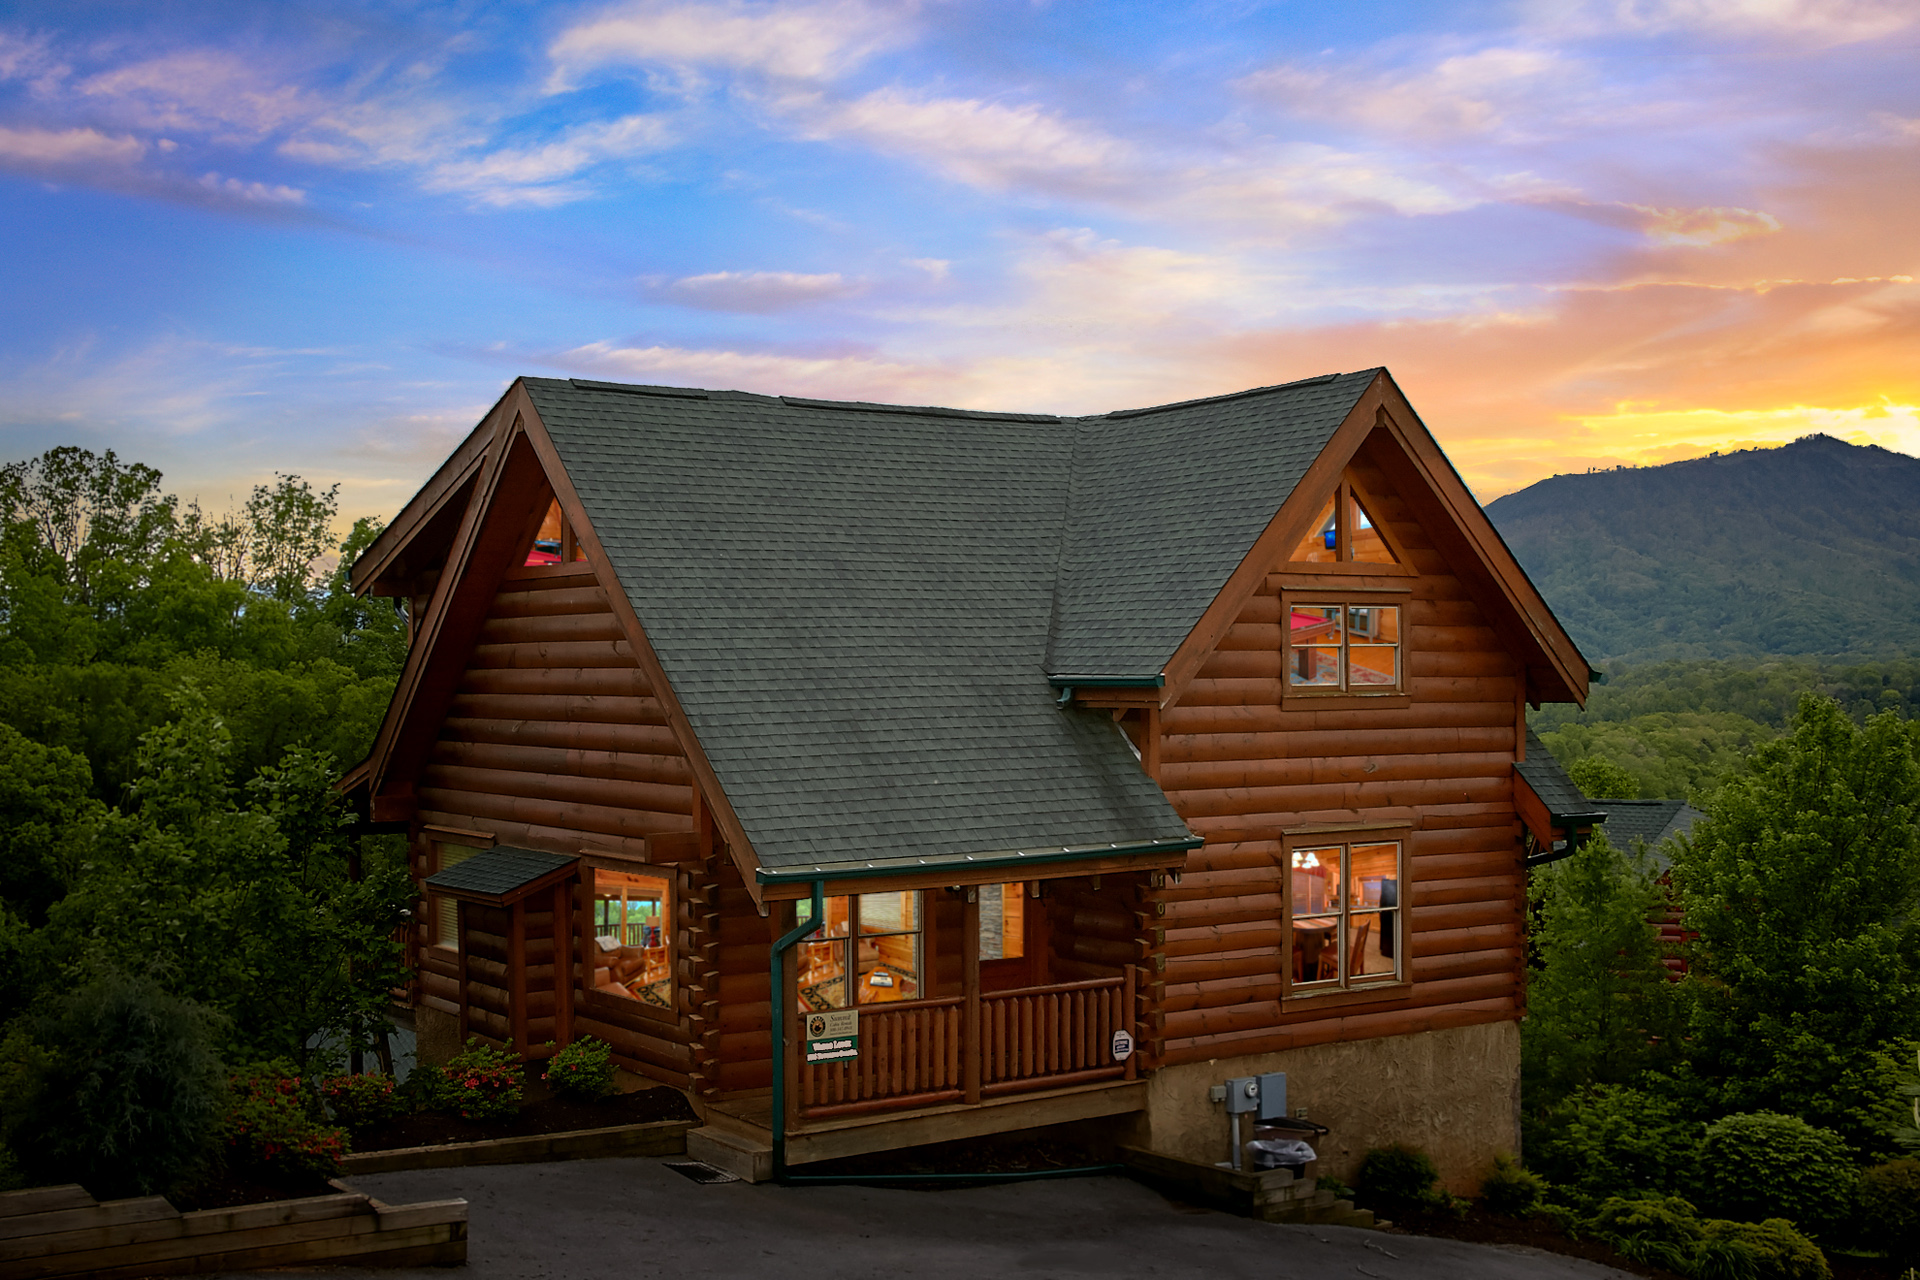 Gatlinburg Cabins For Sale. Log Homes And Cabins For Sale In Gatlinburg TN